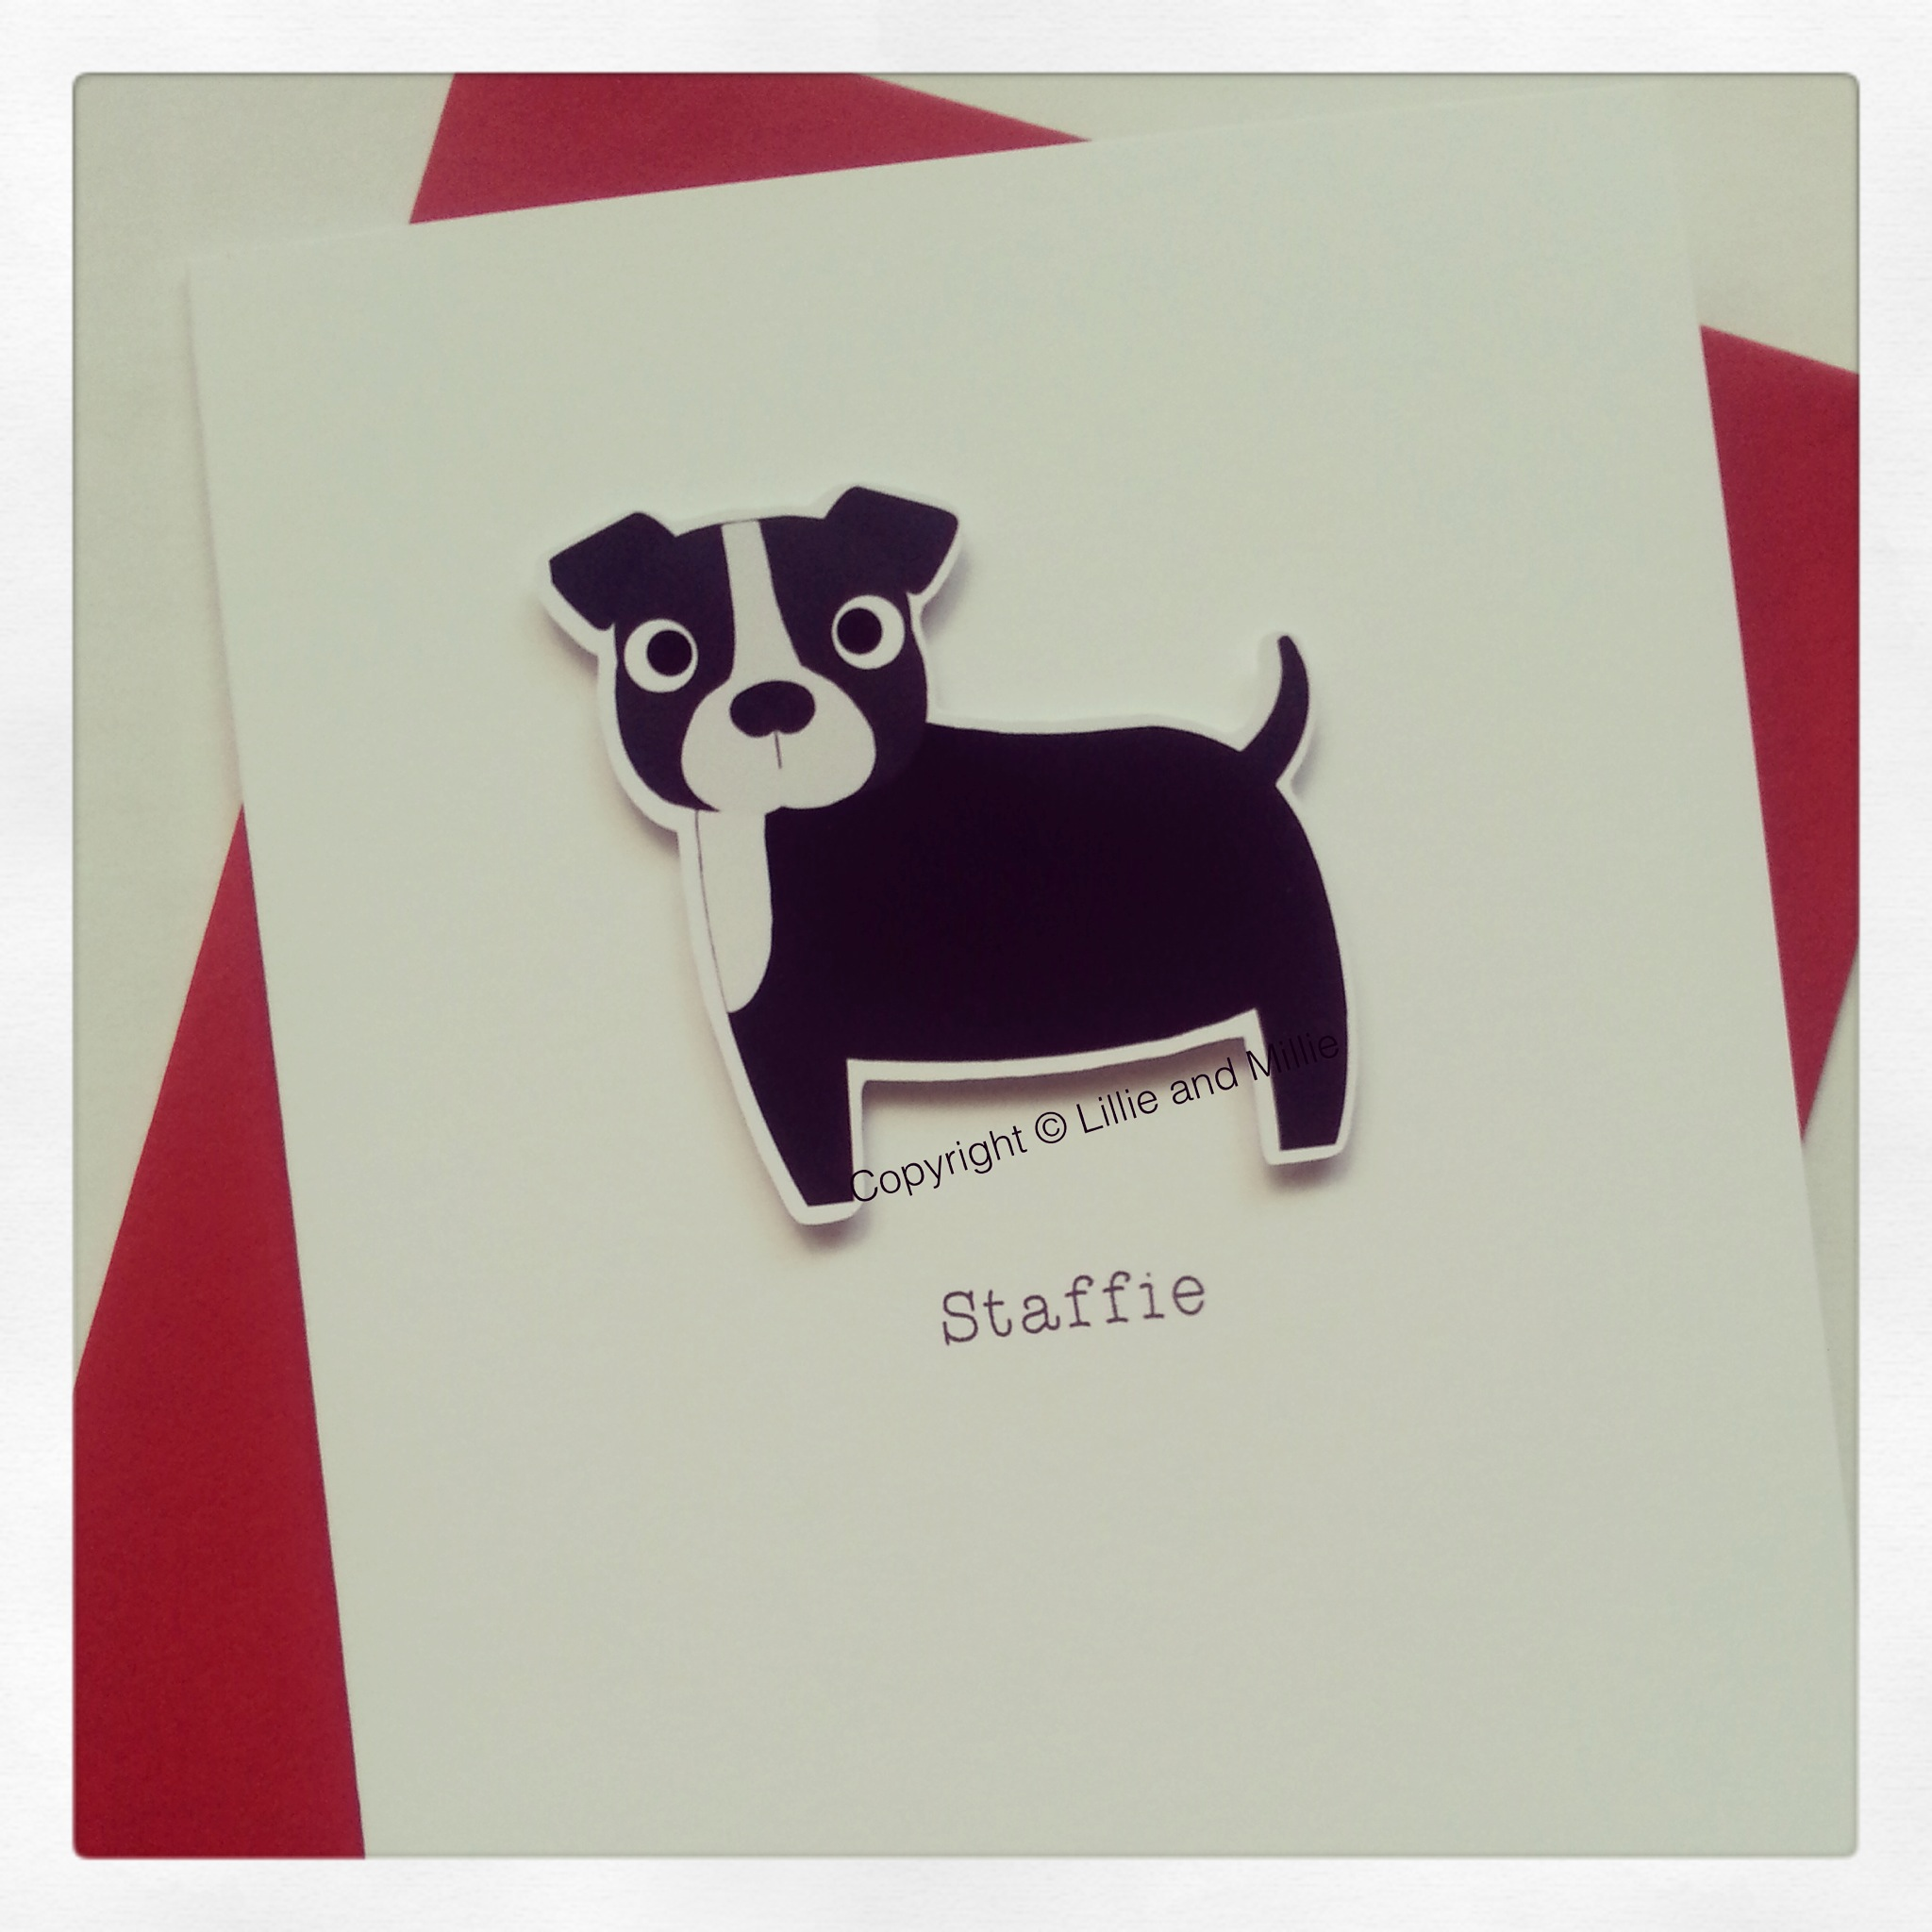 Staffie Staffordshire Bull Terrier Dog Greetings Card